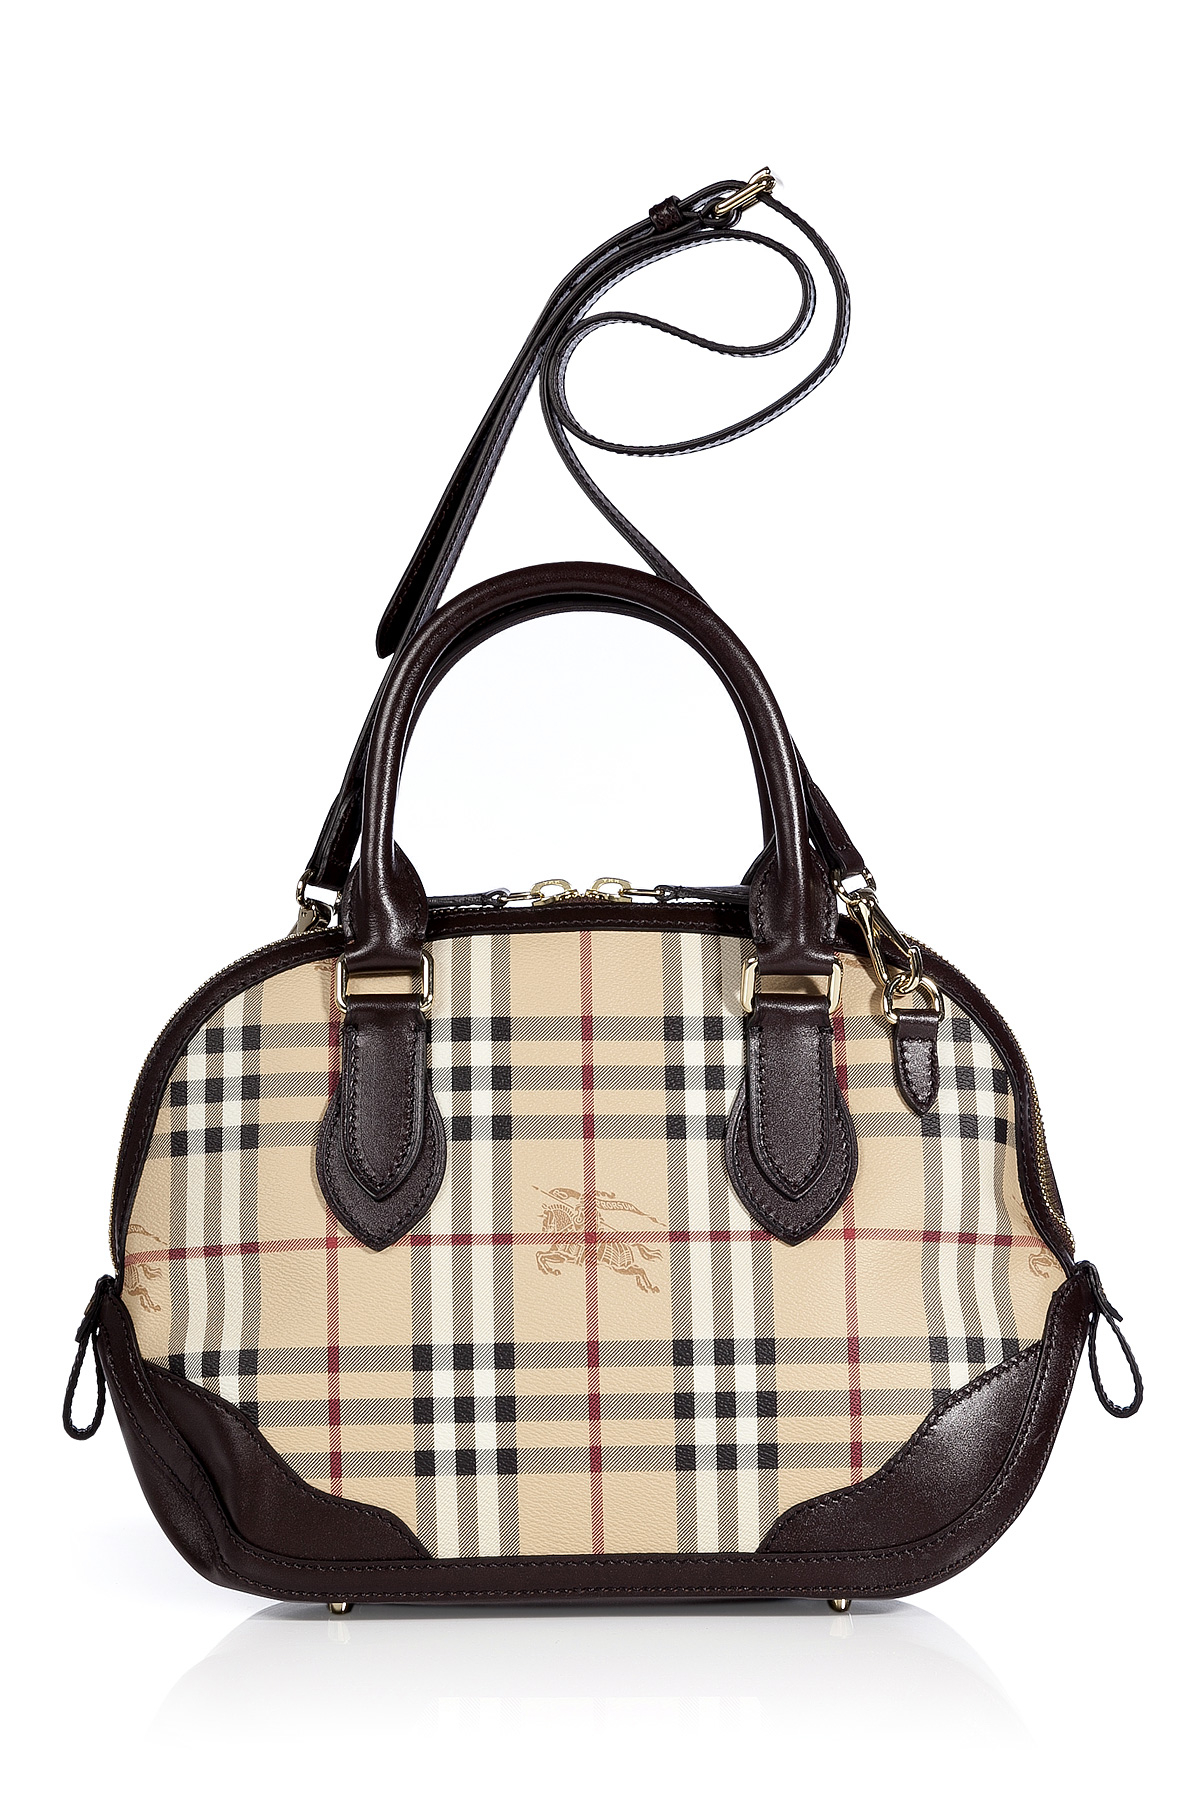 9c28d74c1ffe Burberry Chocolate Haymarket Small Orchard Bowling Bag in Brown - Lyst